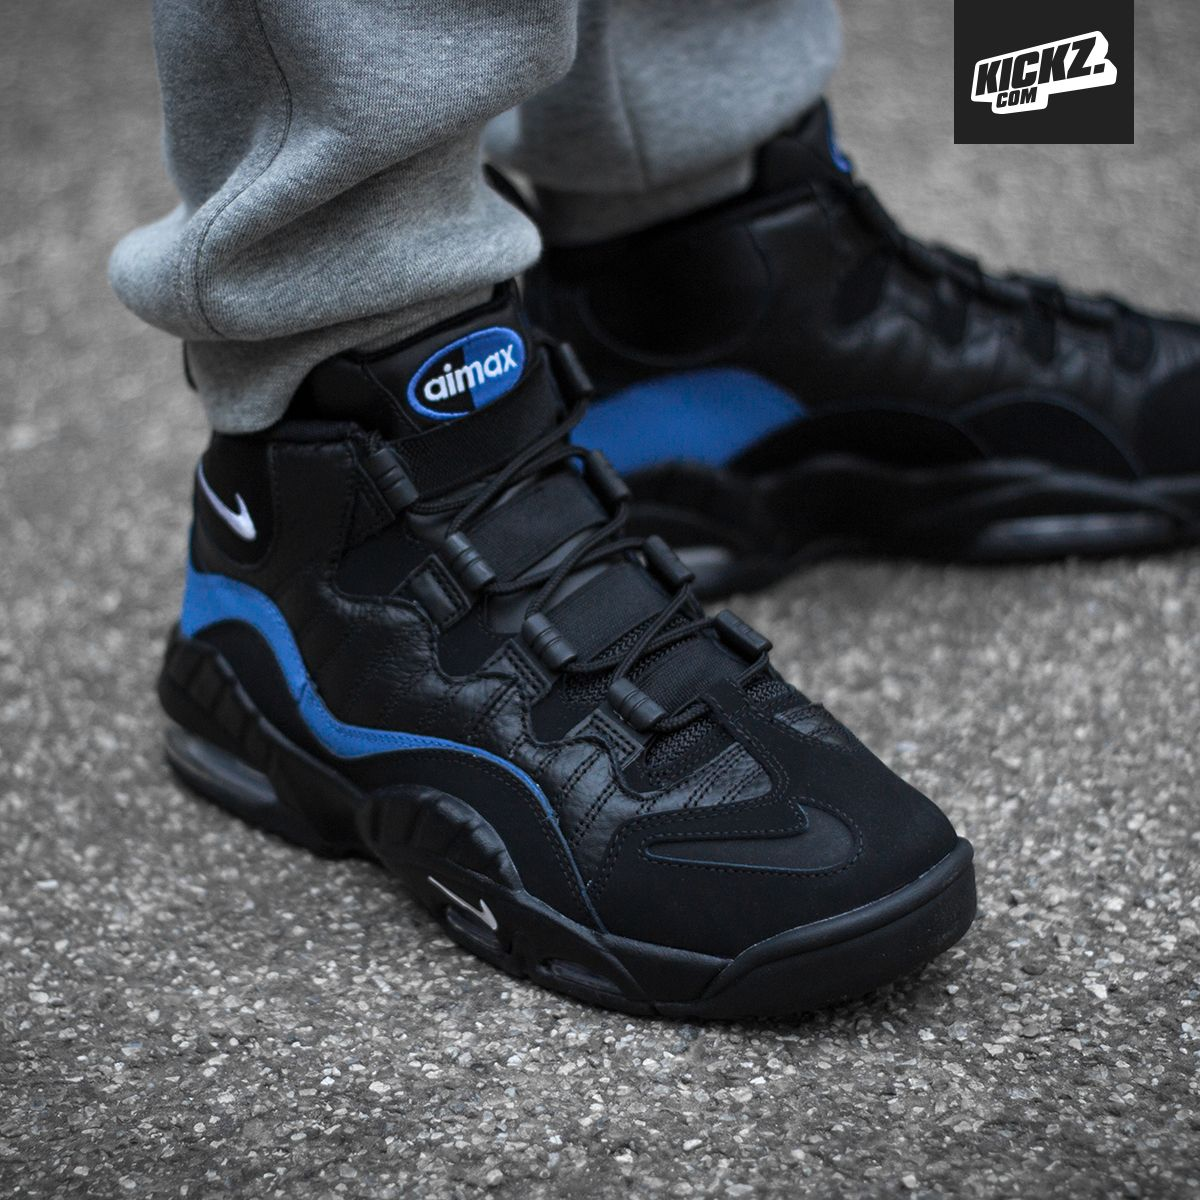 6414762d8df Nike Air Max Sensation - the retro version of Chris Webber s classic Air Max  CW is still a beast!